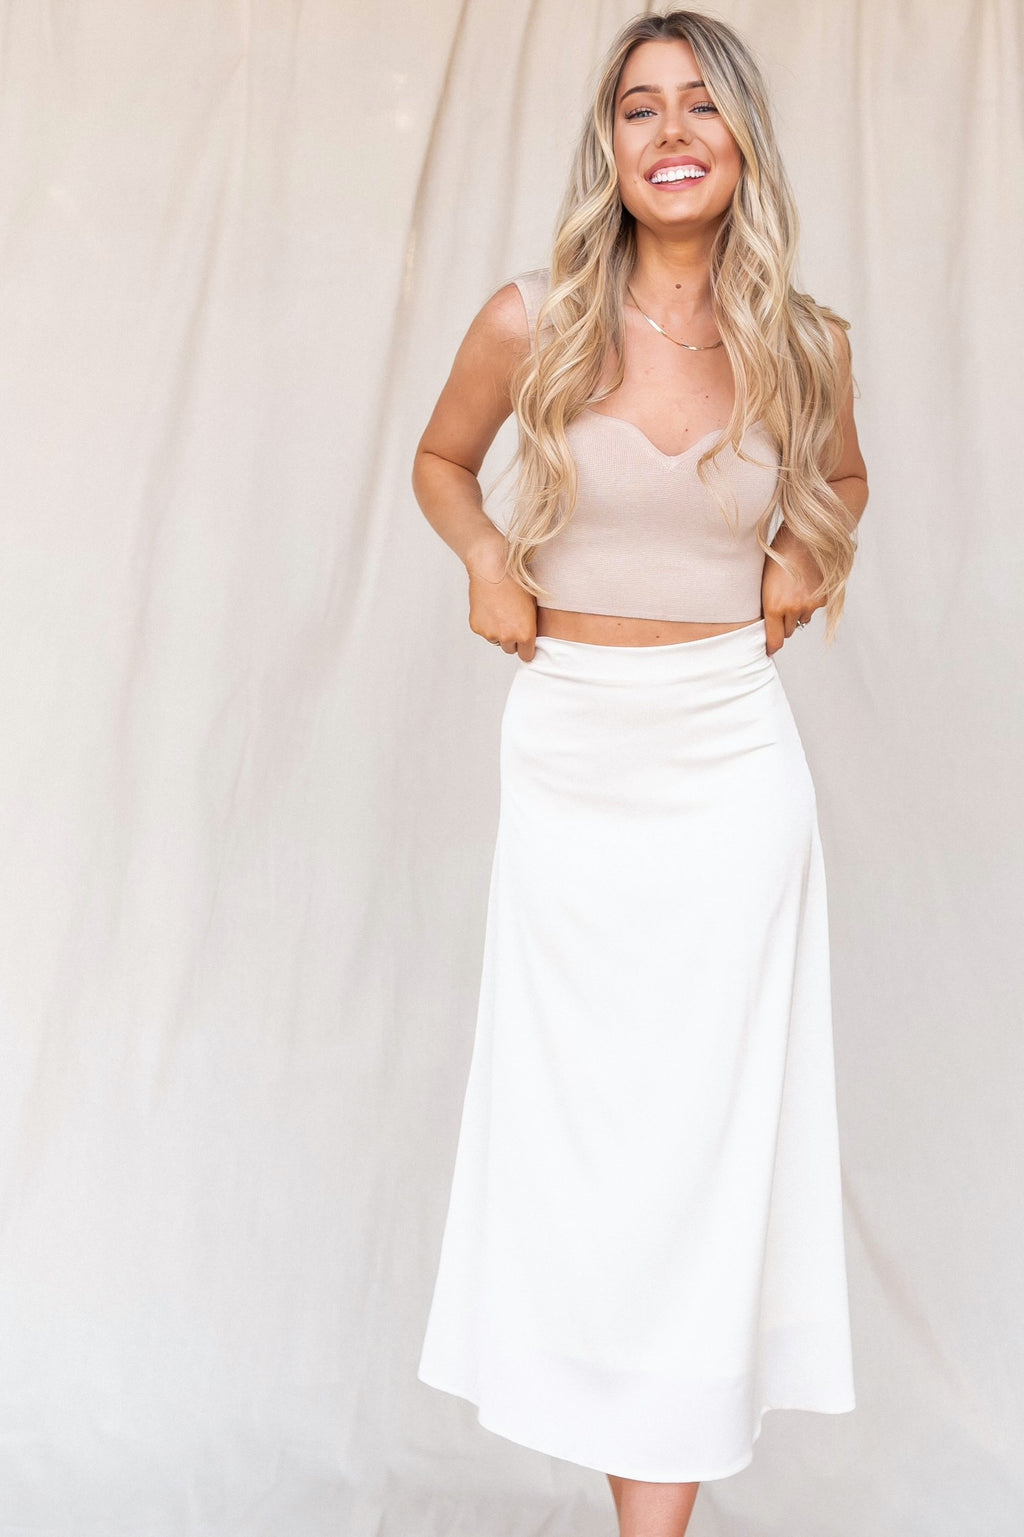 Cream Silky Skirt - LLACIE